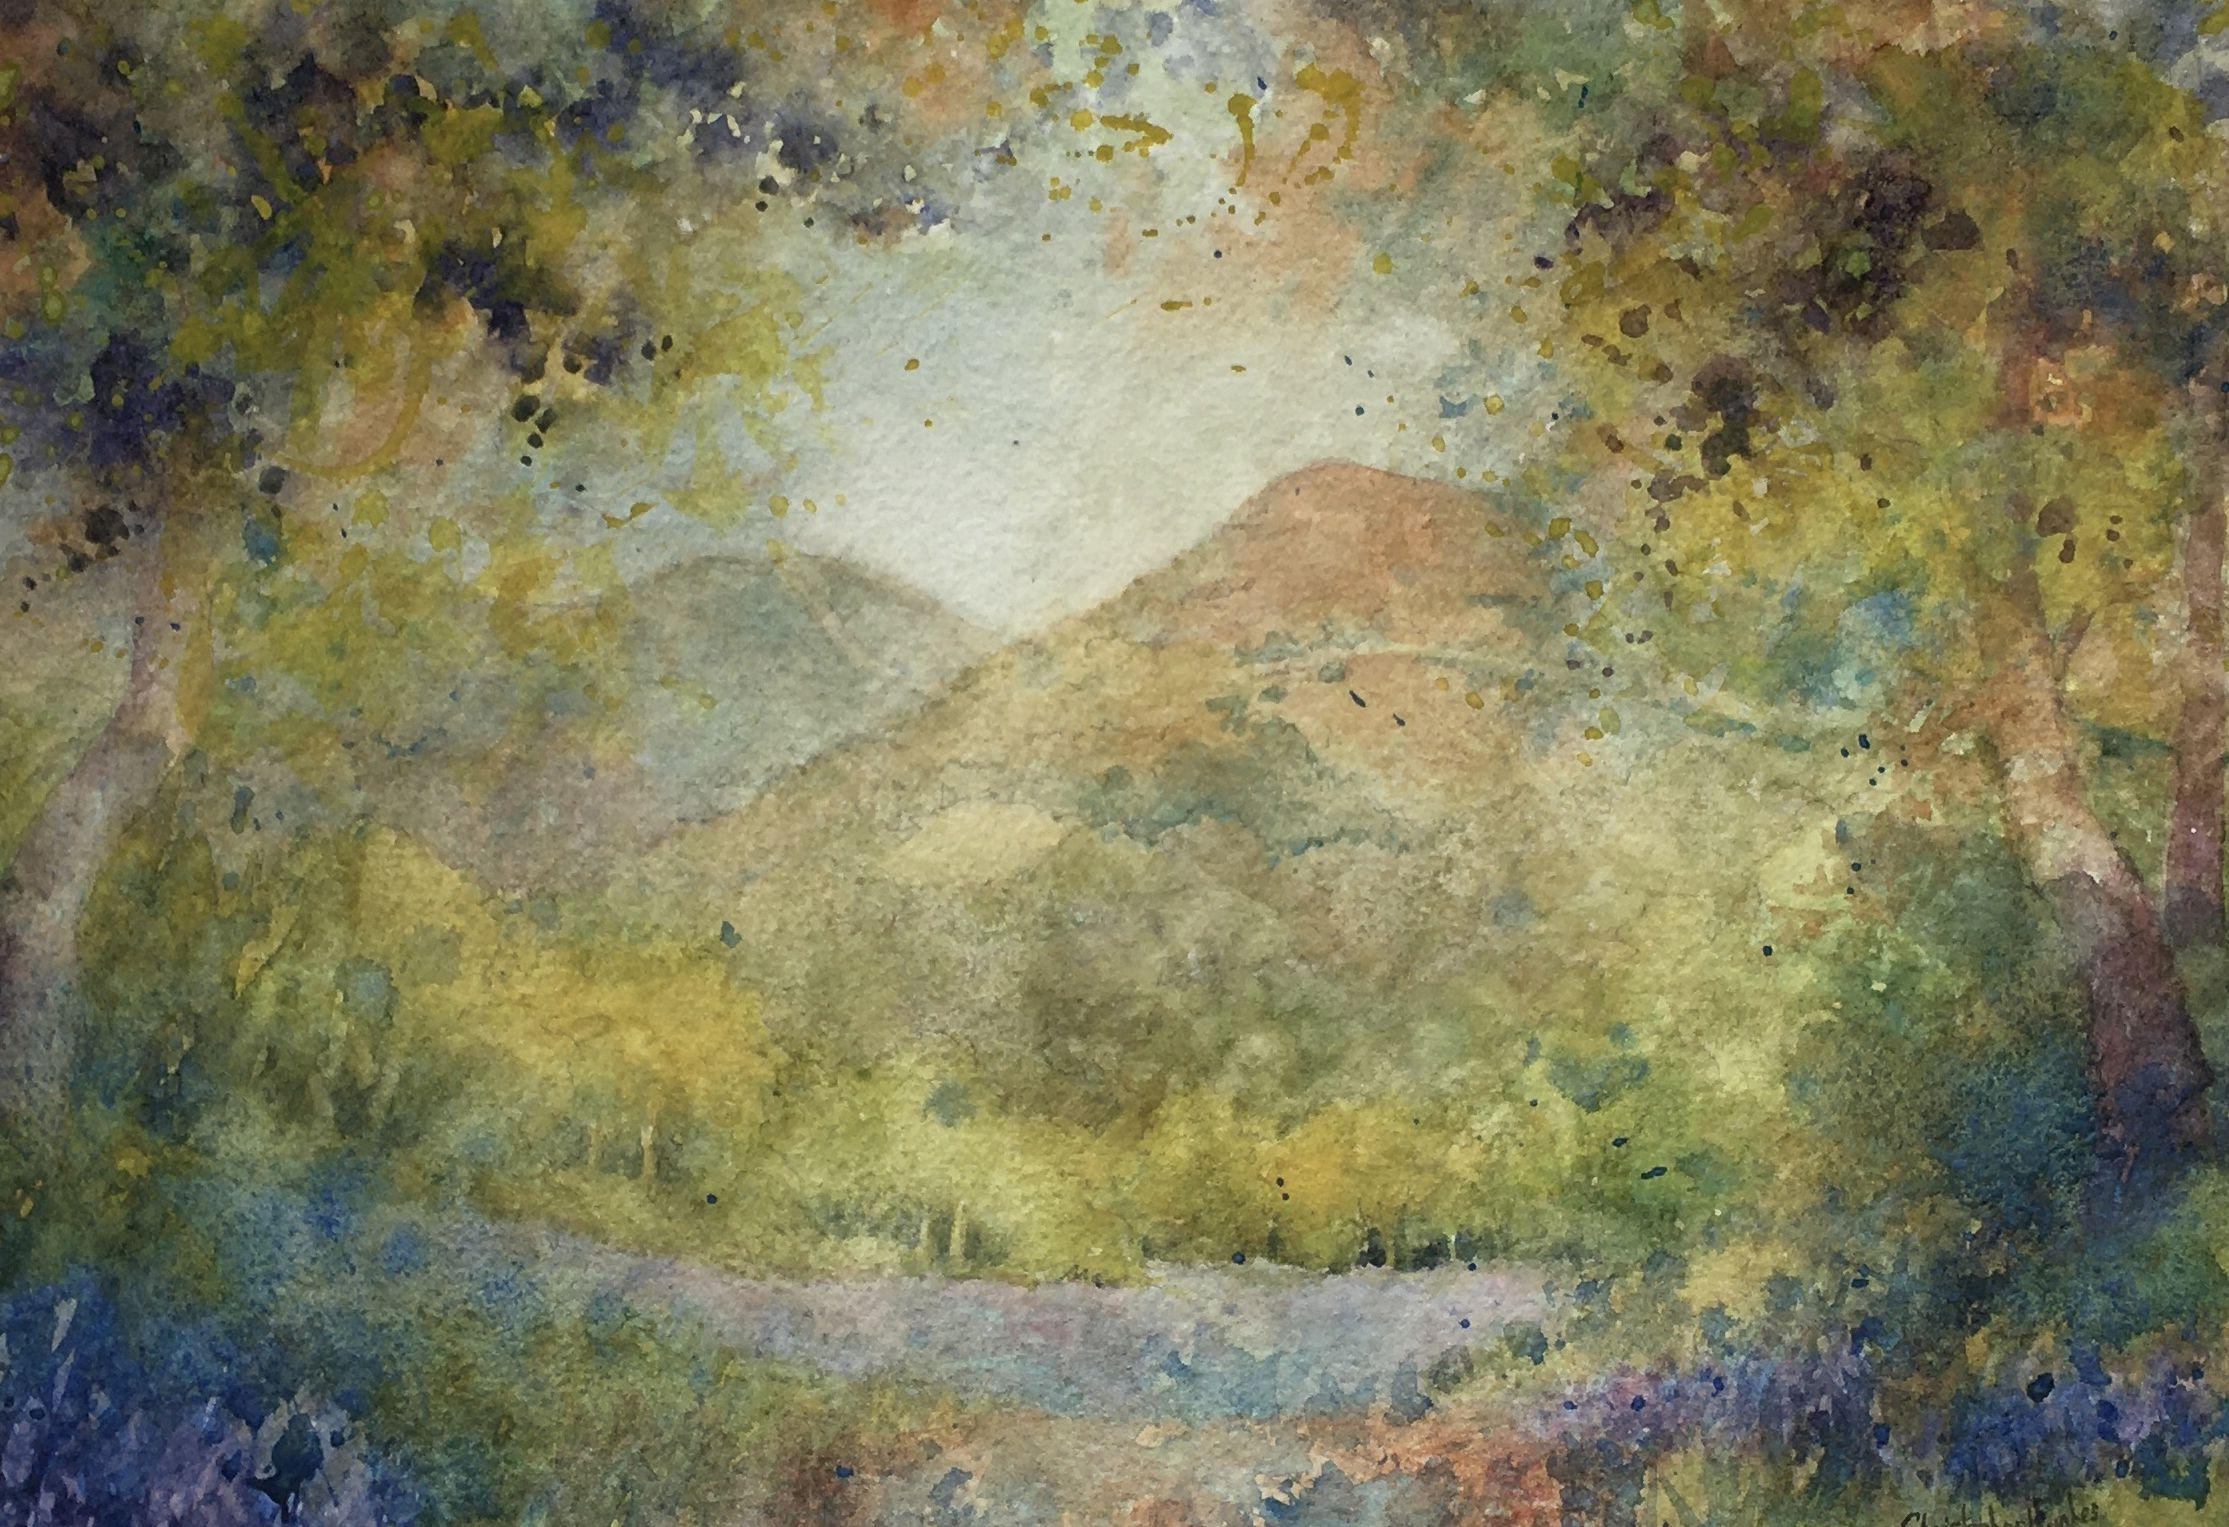 Bluebells and Malverns.An Impression, Painting, Watercolor on Watercolor Paper